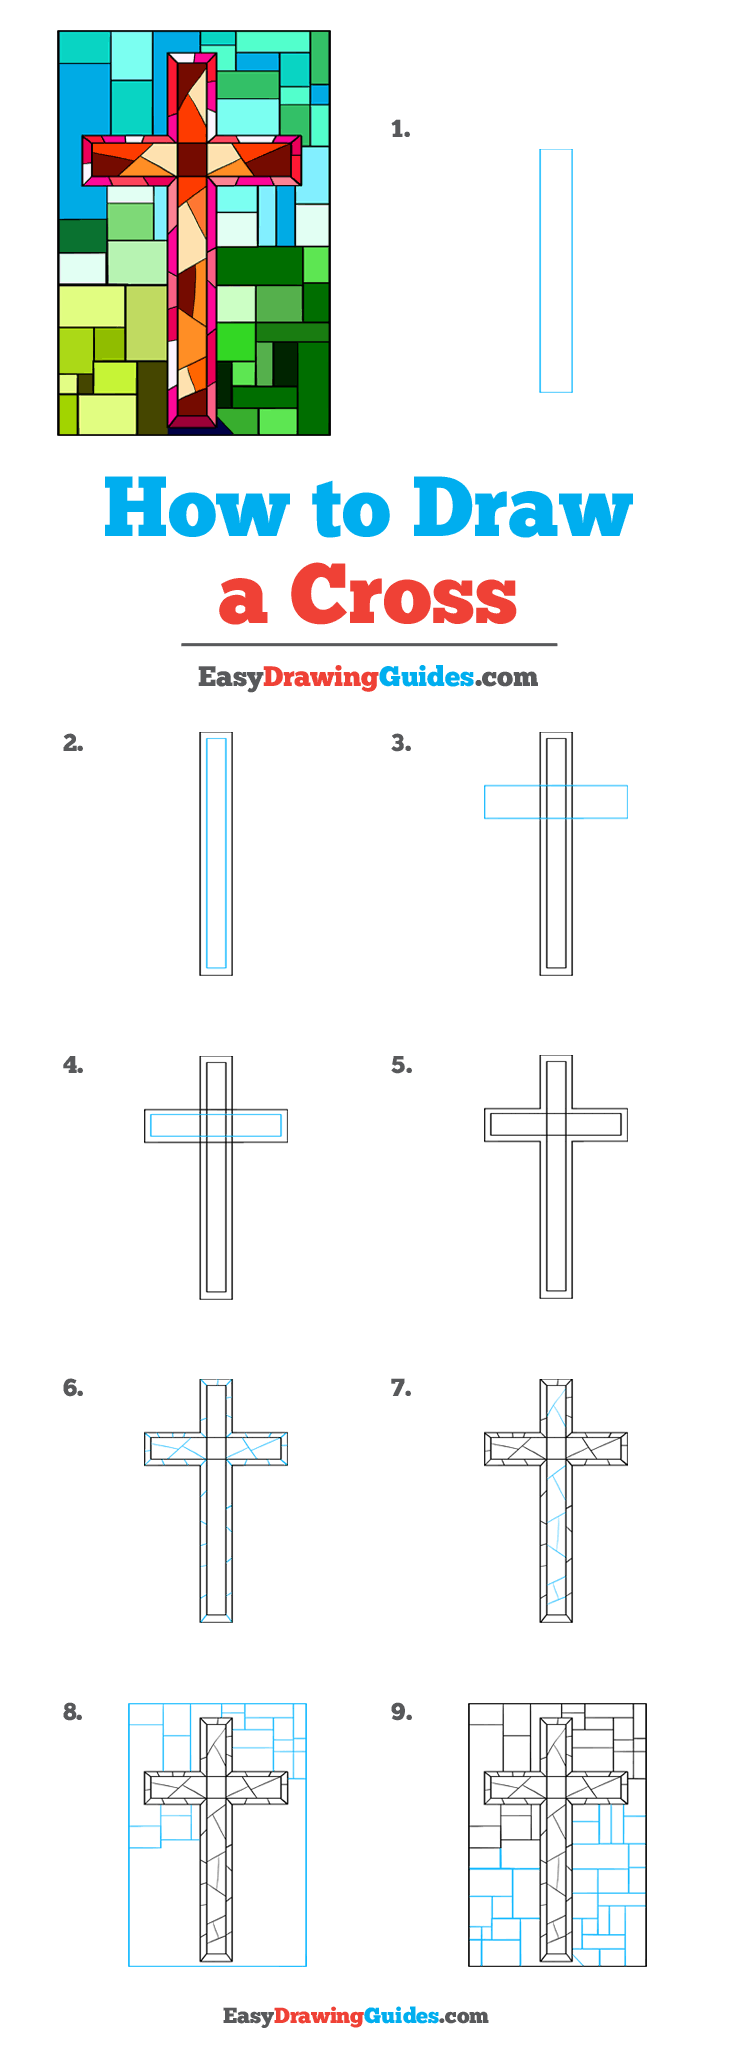 How to Draw a Cross Step by Step Tutorial Image